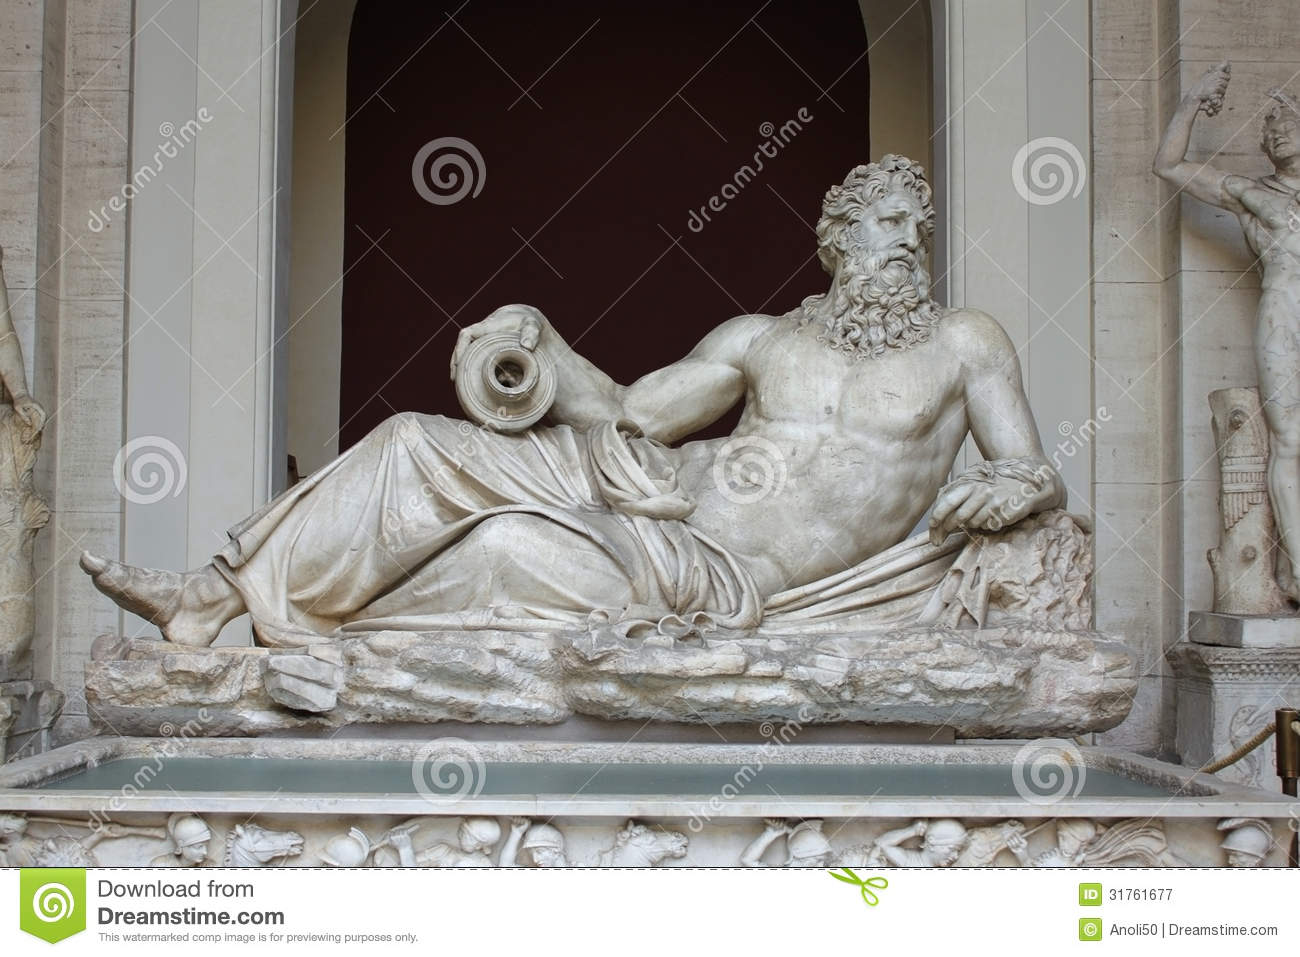 The Statue Of The River God Tigris Or Arno Royalty Free Stock Photography Image 31761677